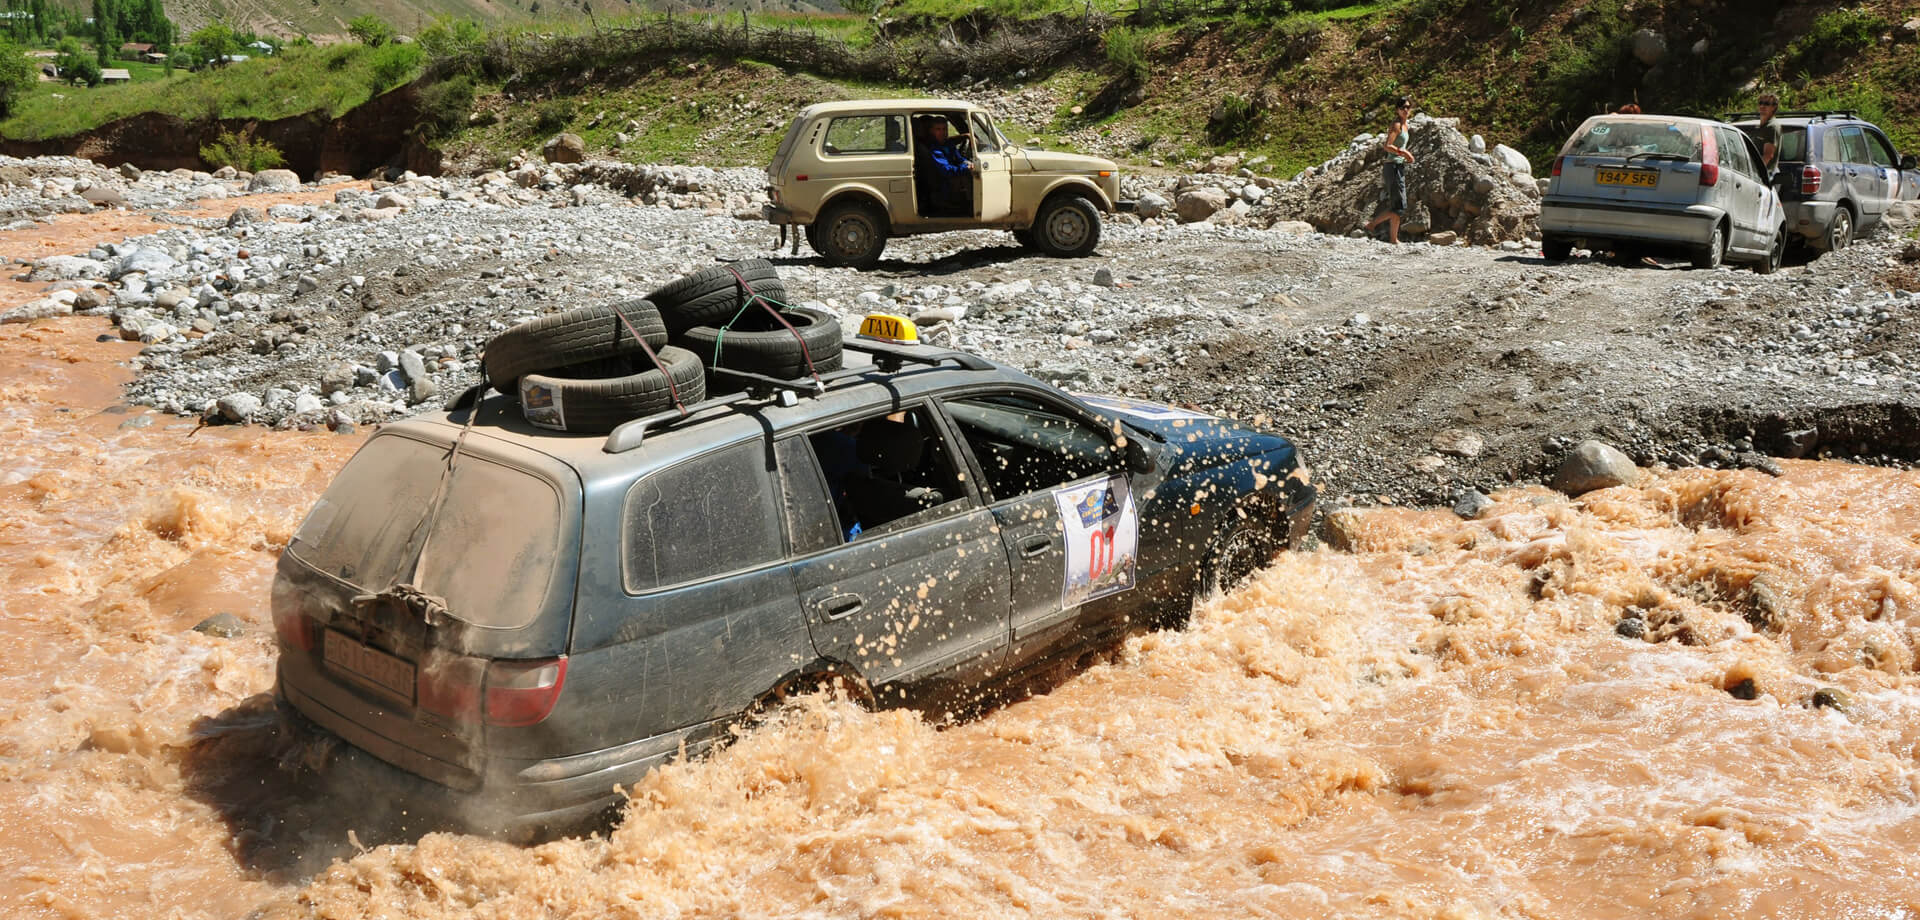 Banger Rally Adventure River crossing in Tajikistan with VW Passat